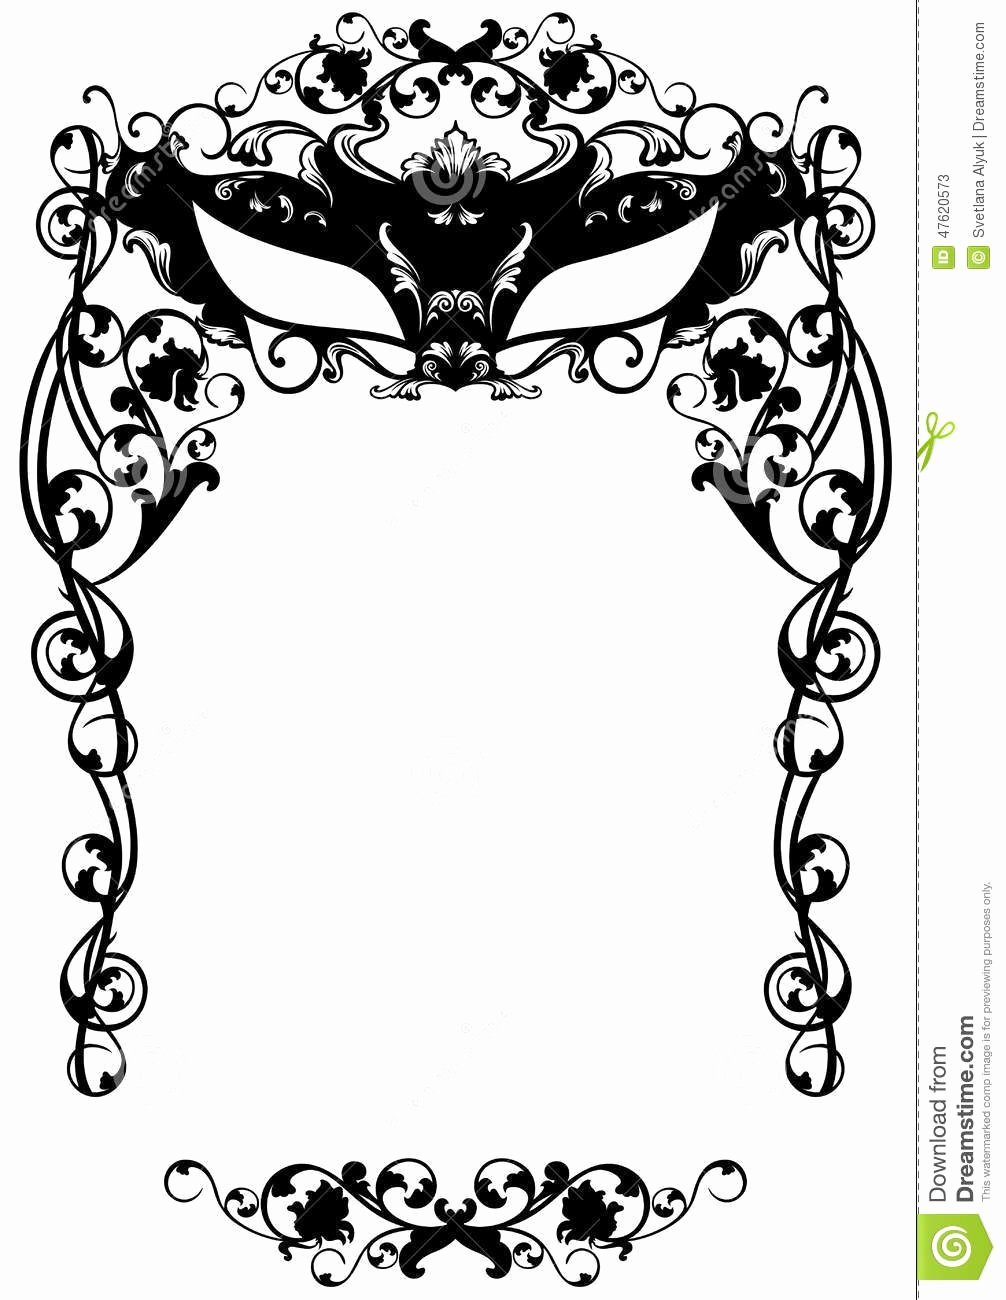 Masquerade Ball Invitations Free Templates Inspirational Masked Ball Invitation Stock Vector Illustration Of Floral